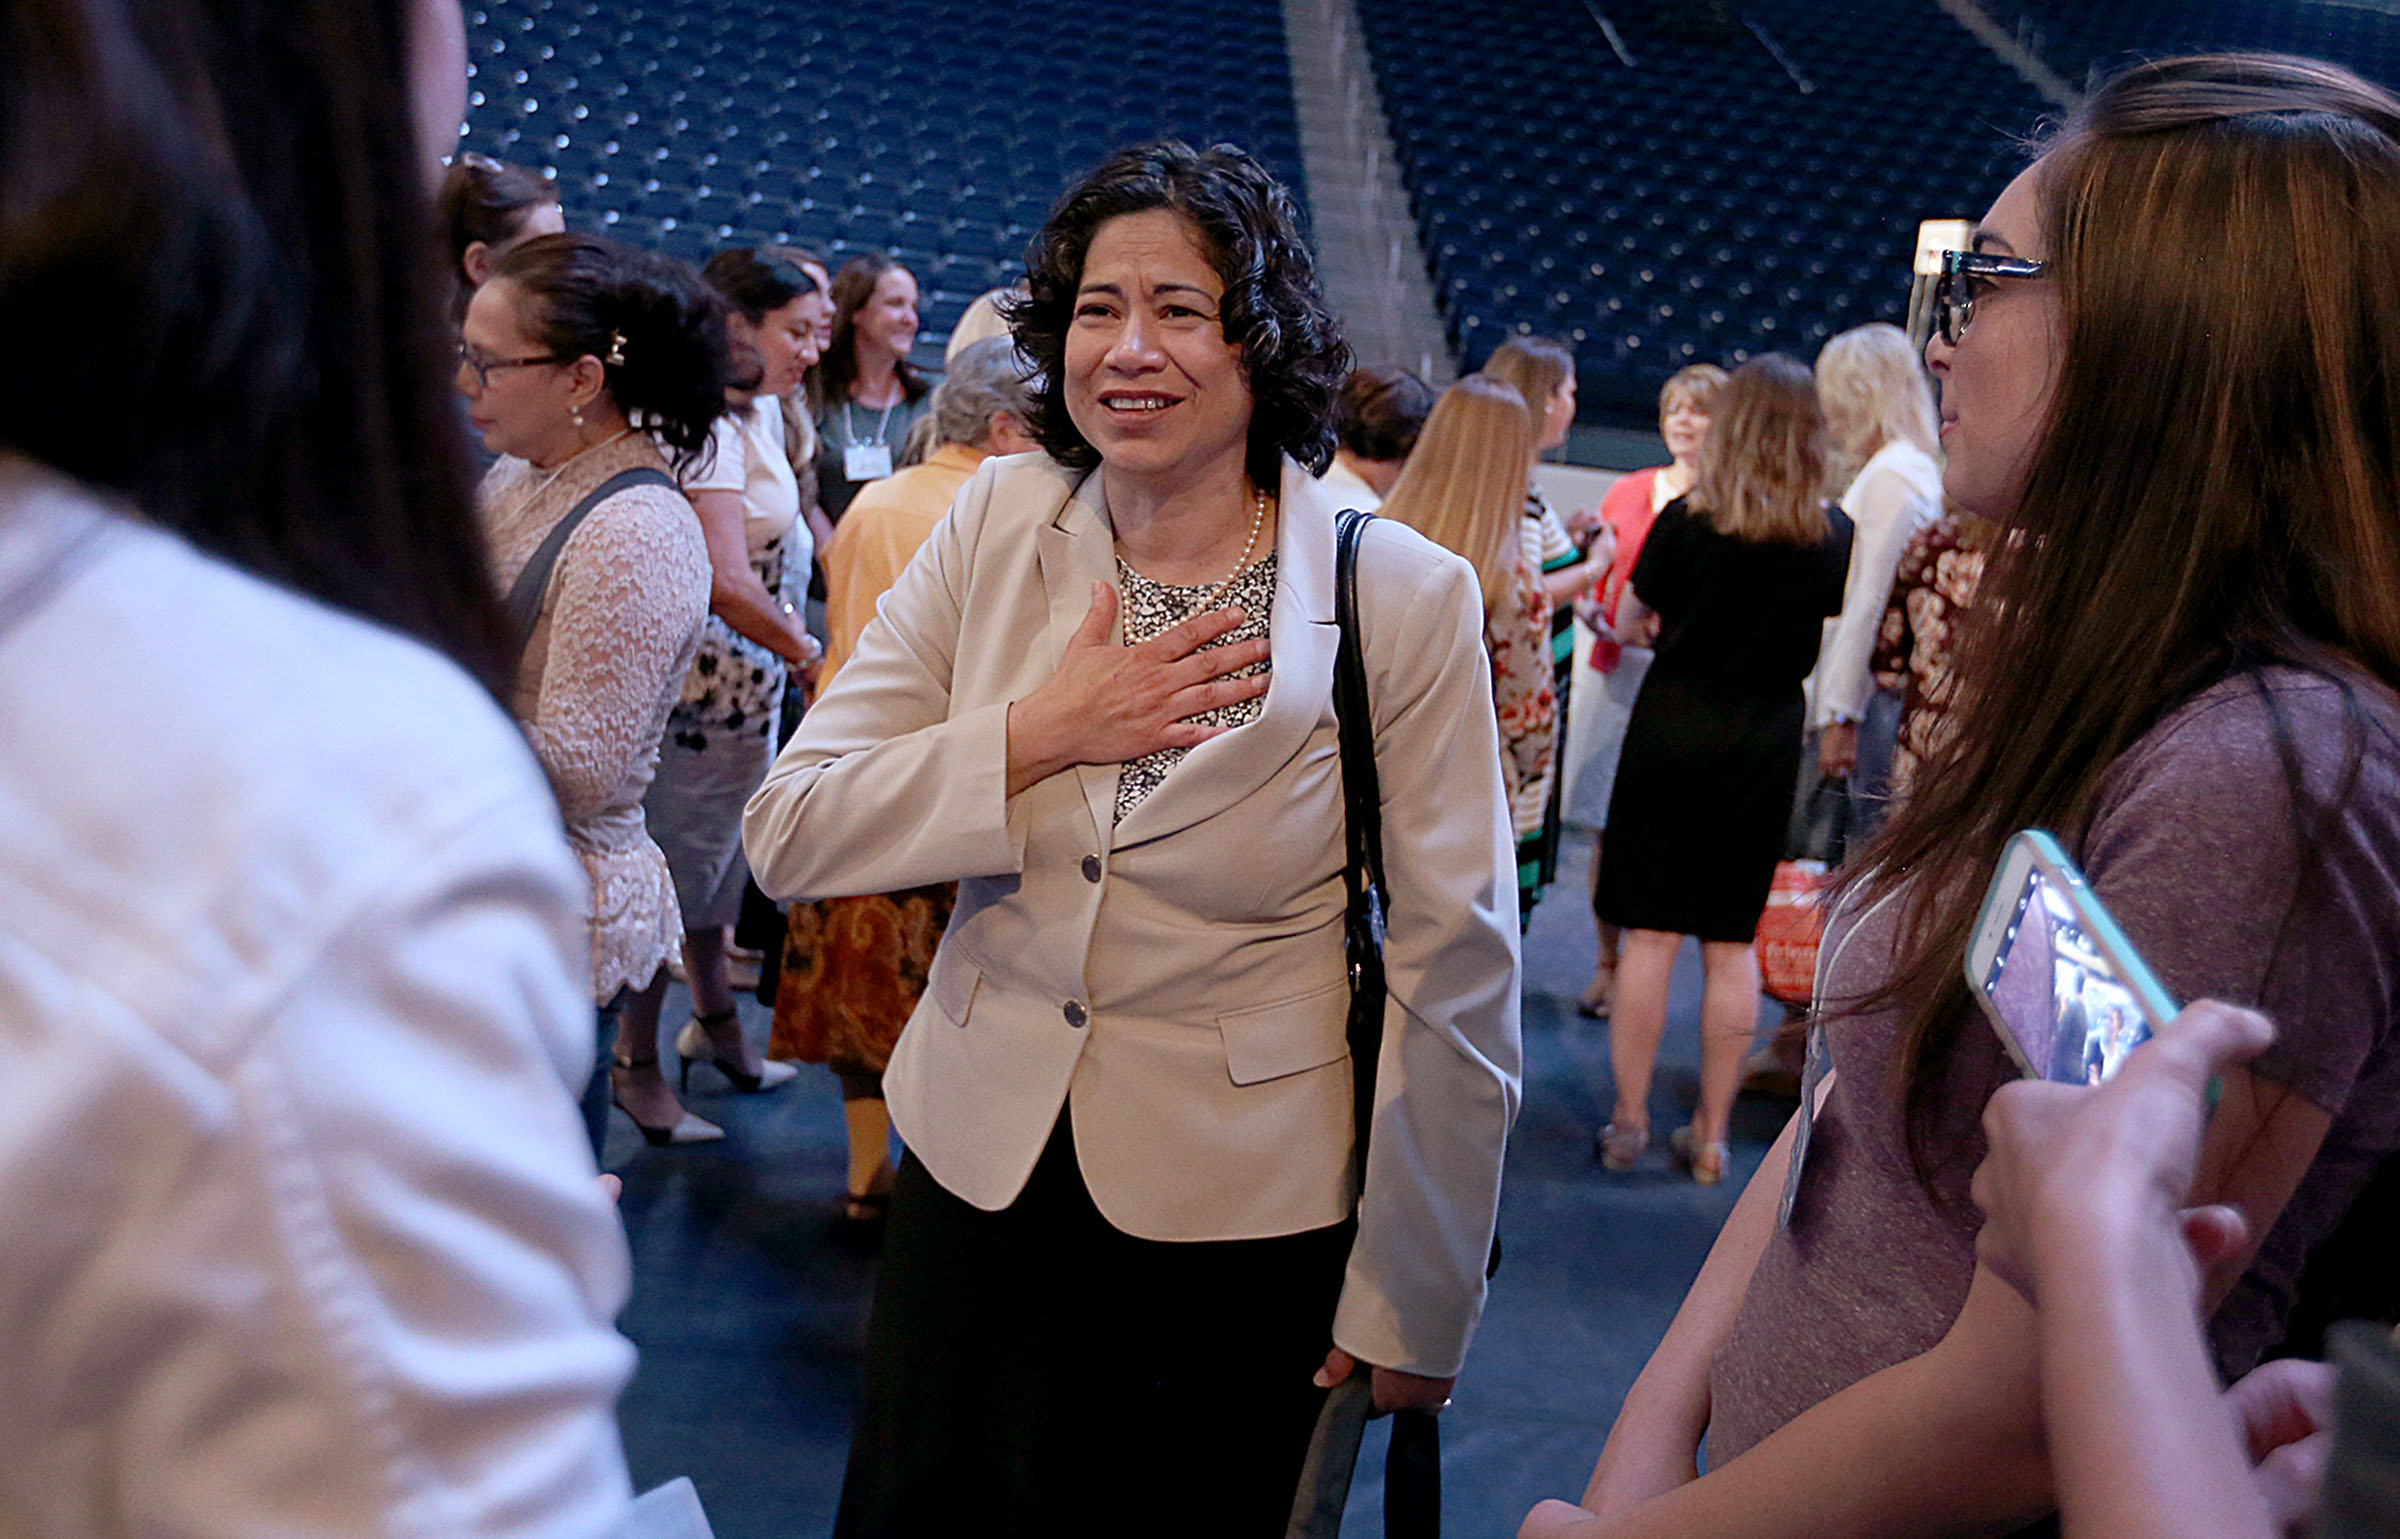 Reyna I. Aburto, Relief Society Presidency Second Counselor, speaks to attendees of the BYU Women's Conference in the Marriott Center at BYU in Provo on Friday, May 5, 2017.